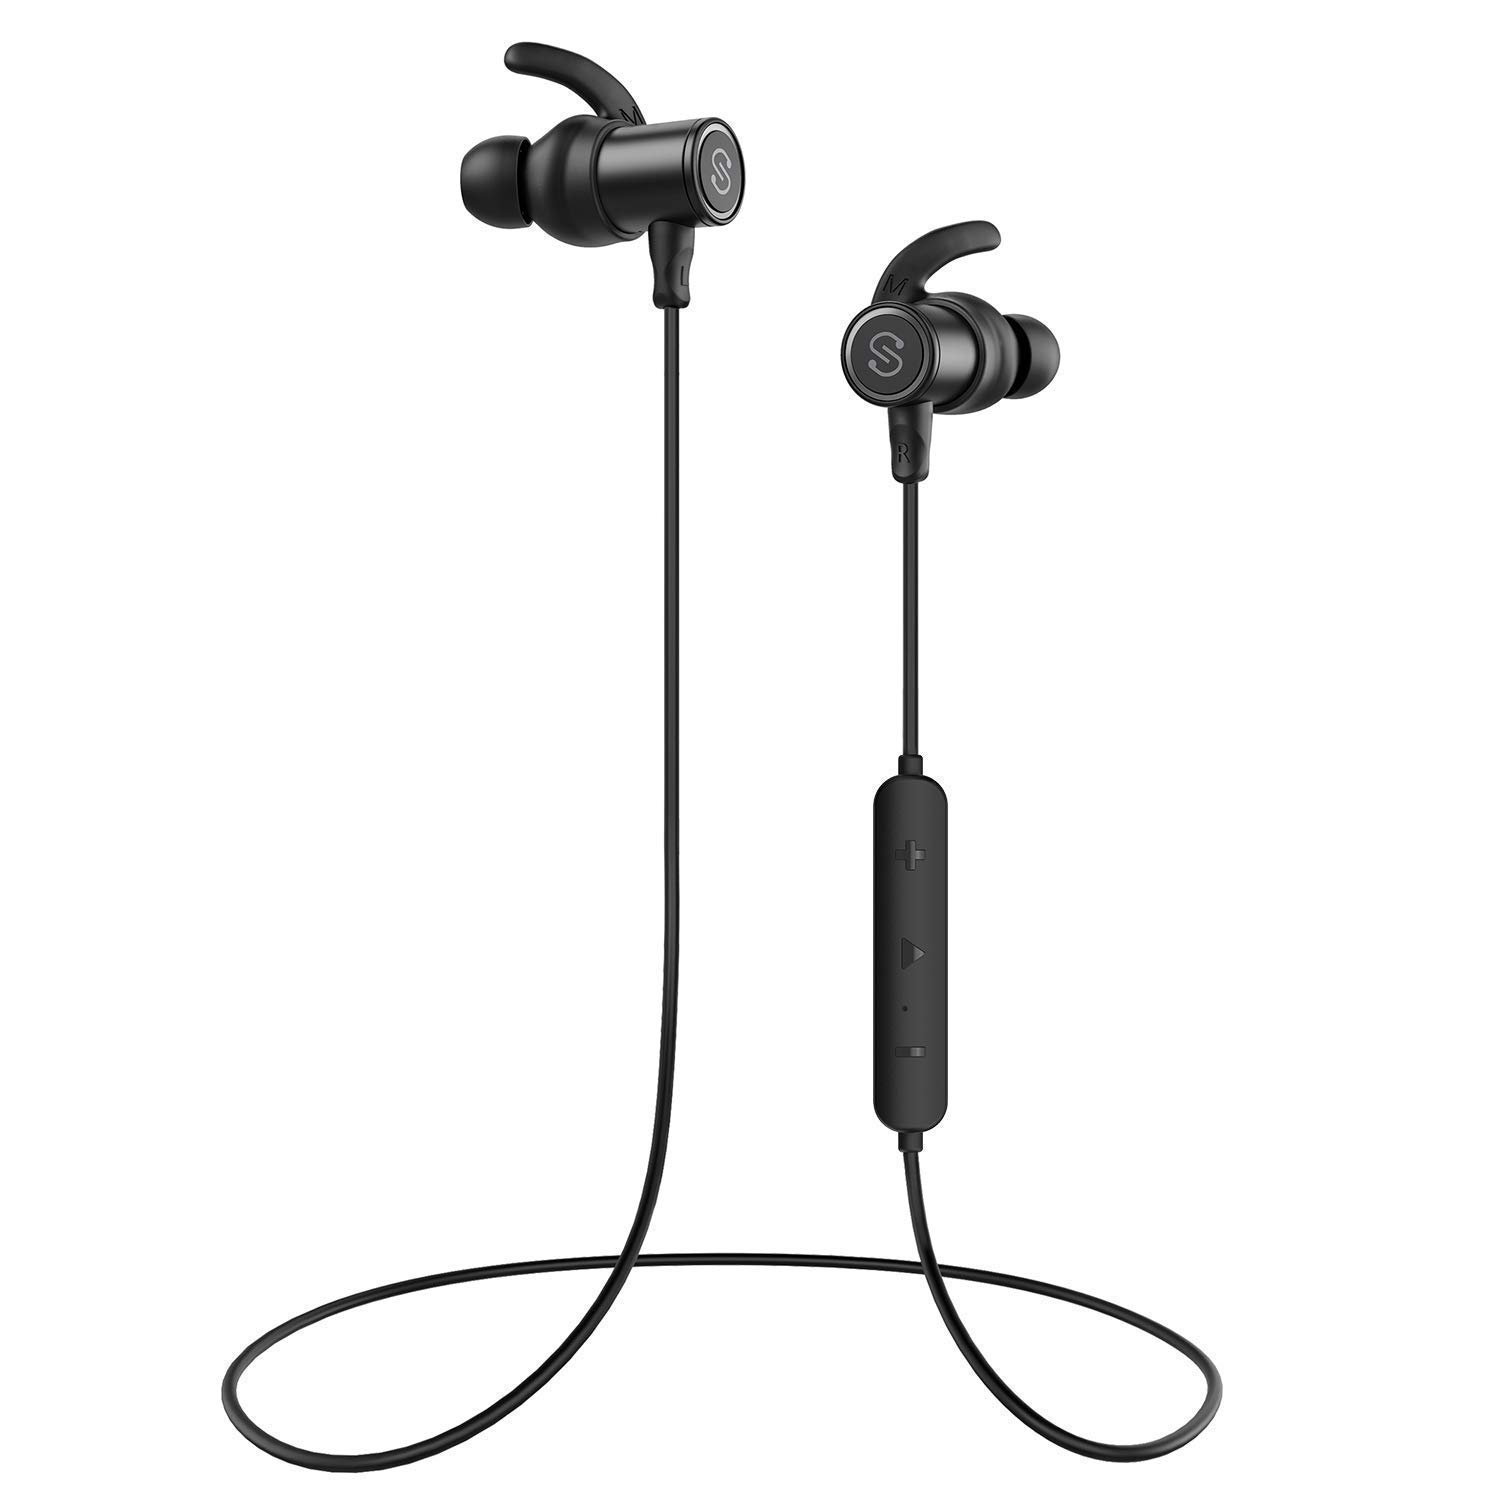 5 Best Value Wireless Earbuds of 2018 - SoundPEATS Q16